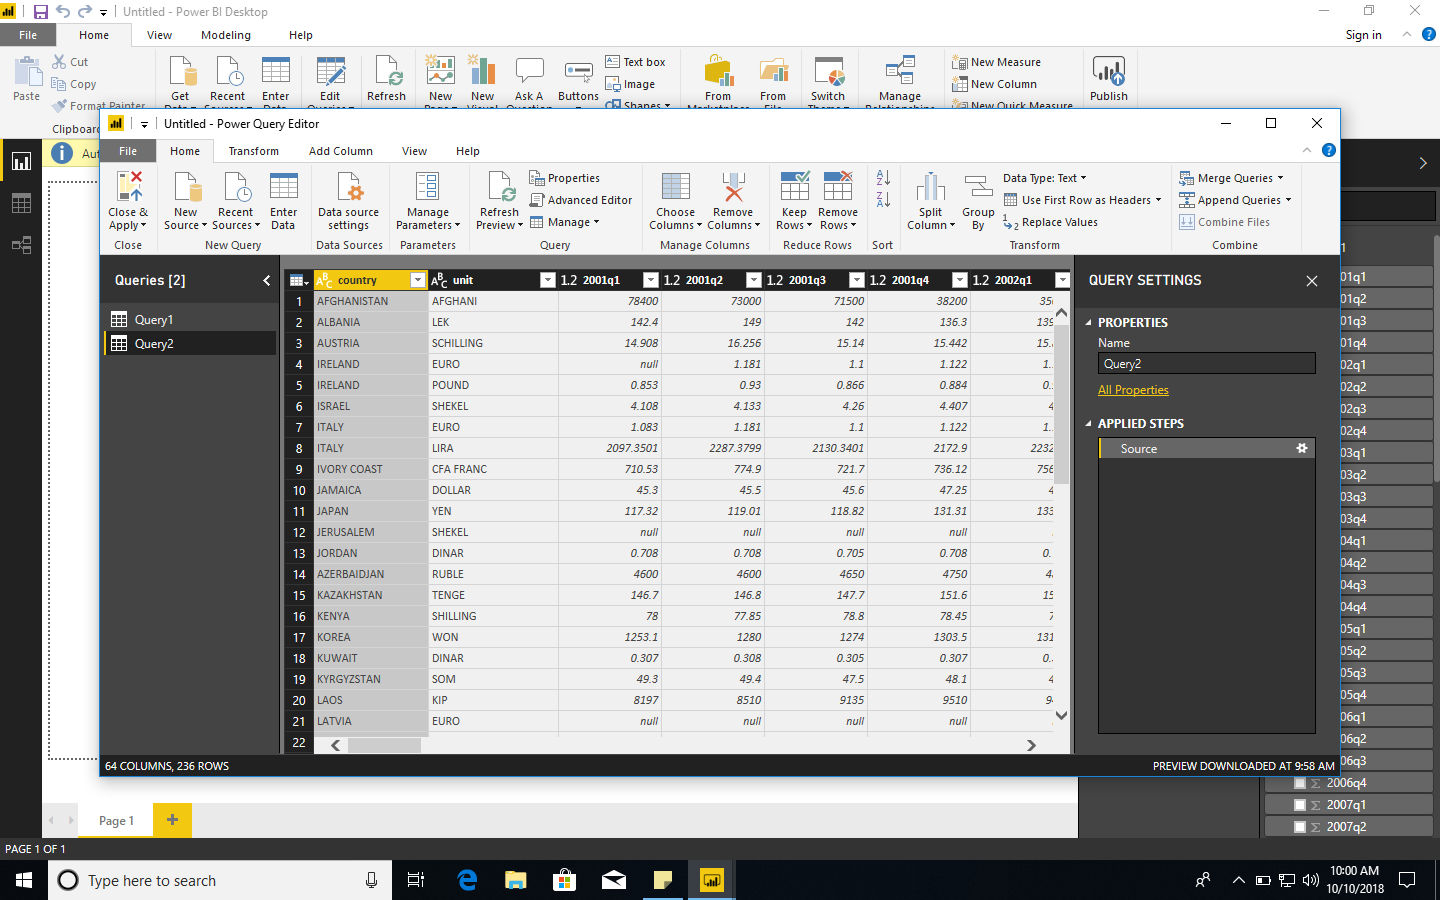 Power BI and data world